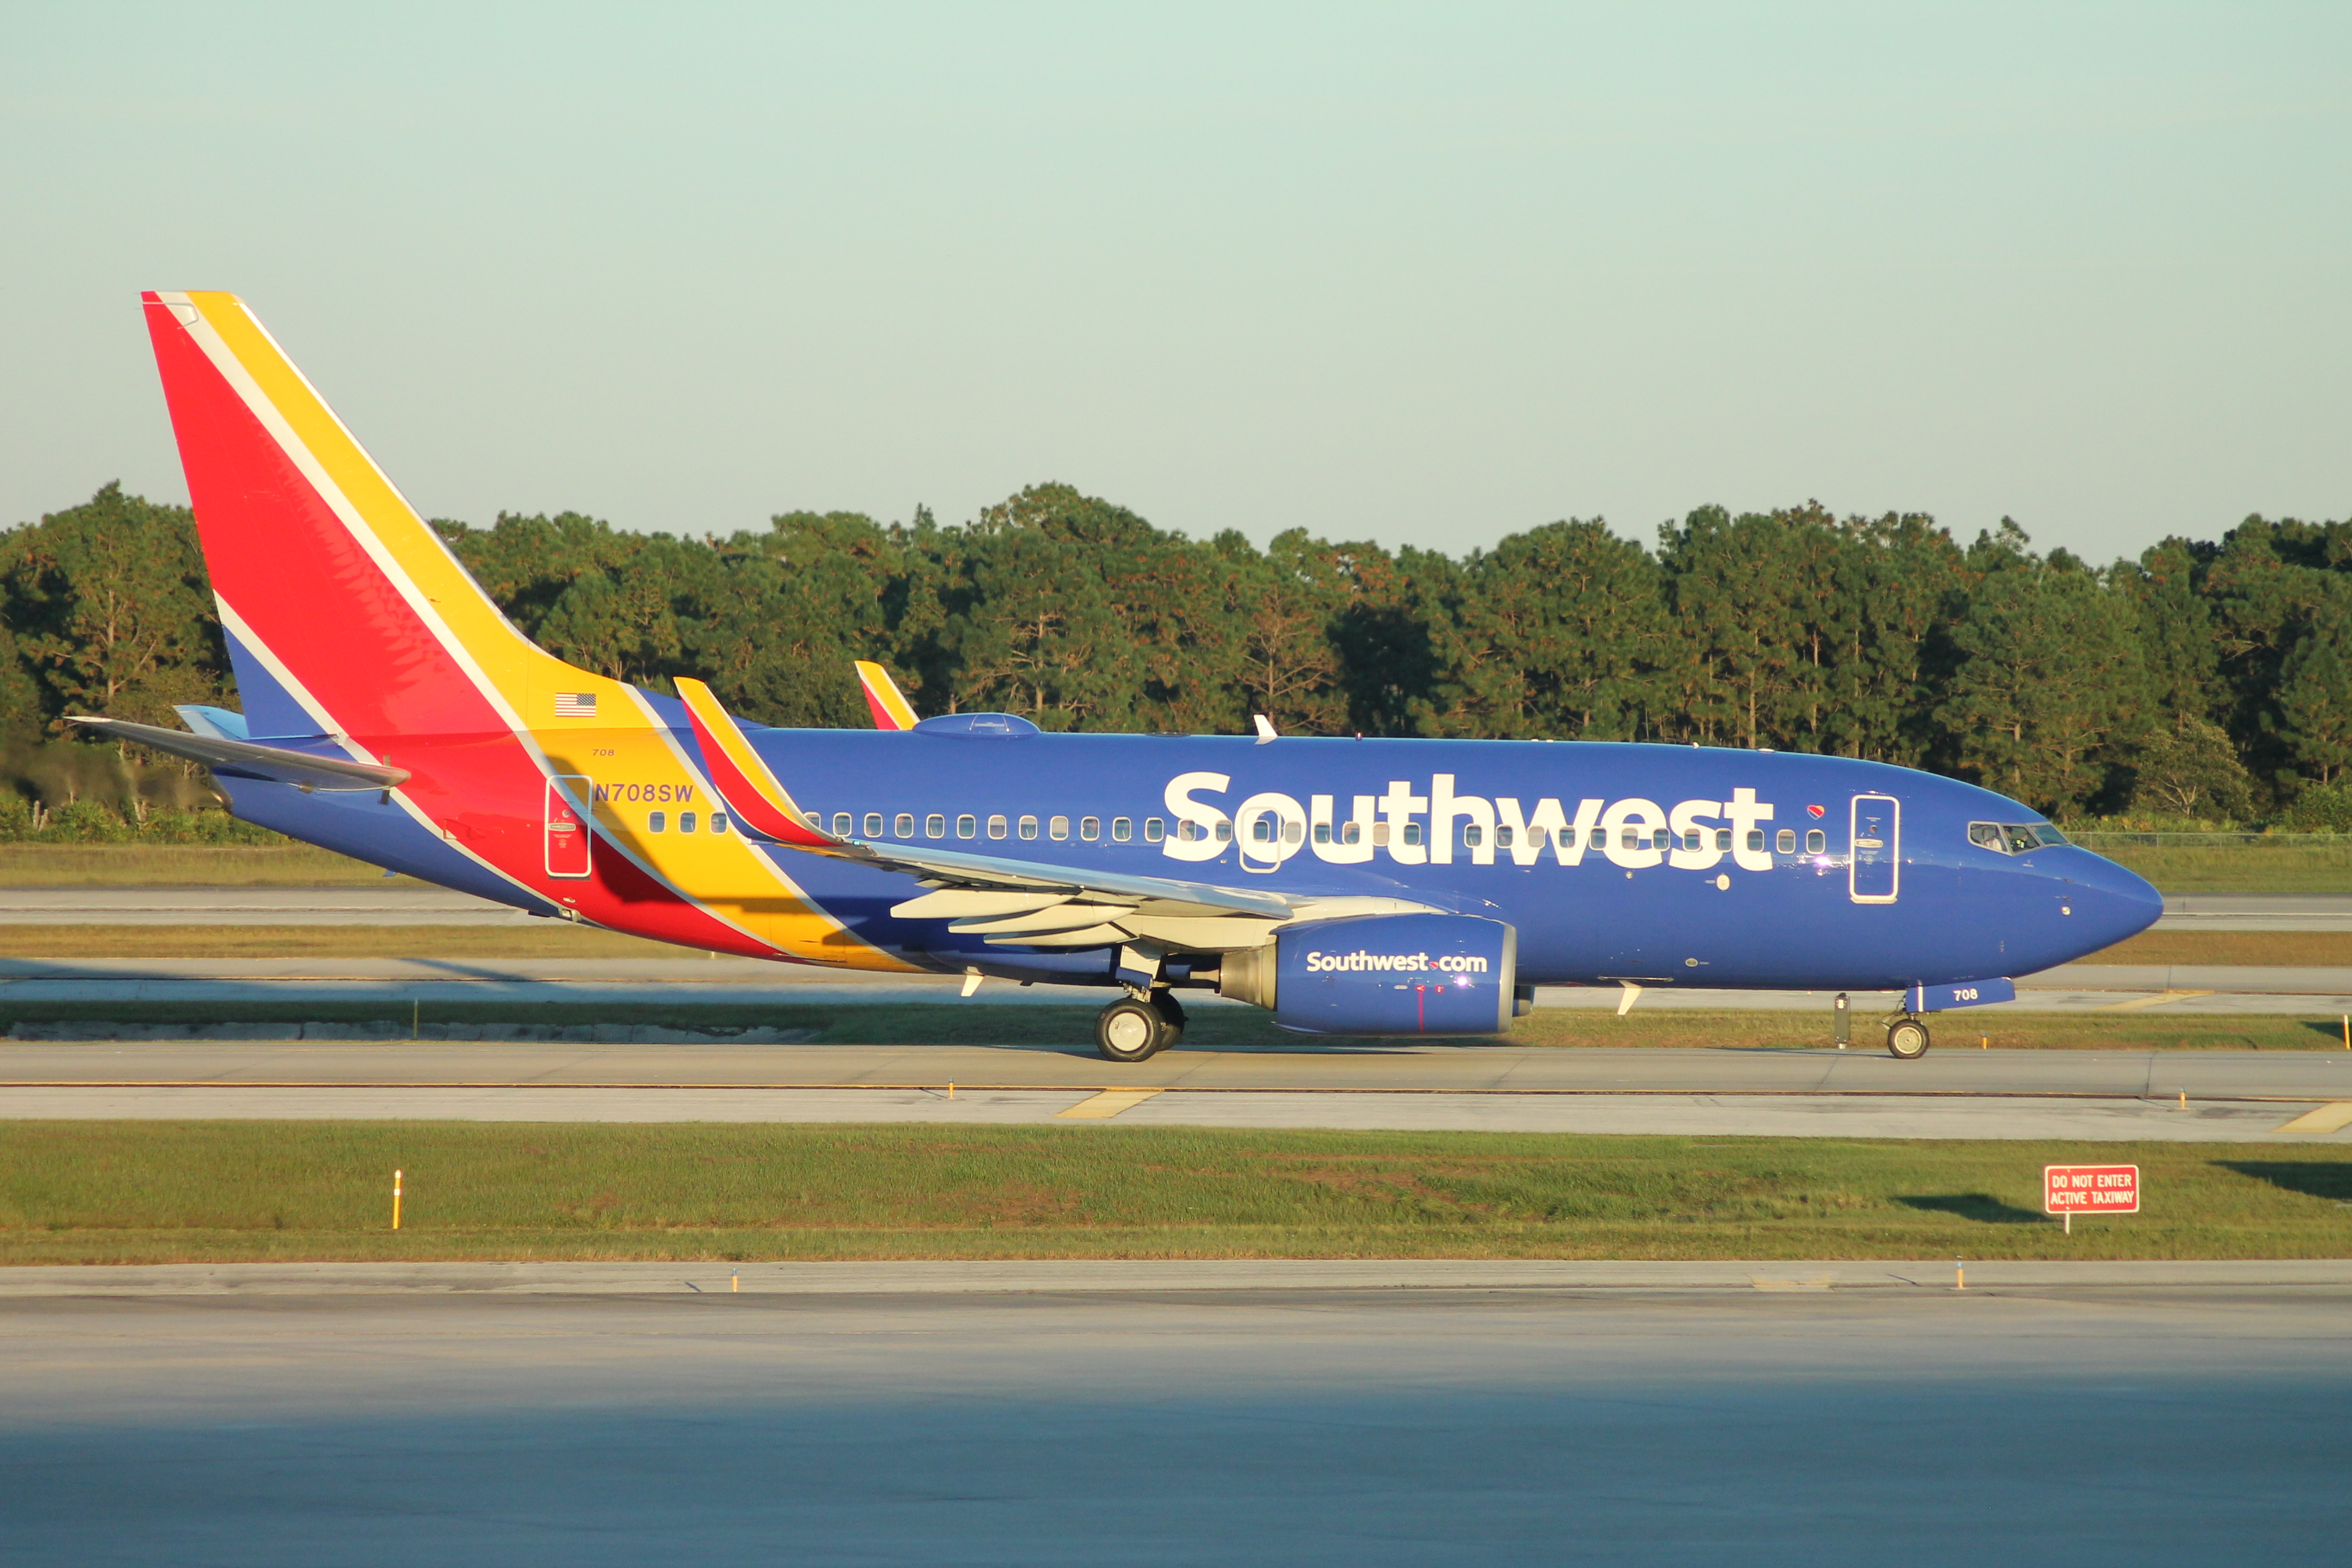 """an introduction to southwest airlines At southwest airlines co, the corporate culture makes the airline unique, says elizabeth pedrick sartain, a longtime employee who was named vice president of the people department three months ago """"we feel this fun atmosphere builds a strong sense of community."""